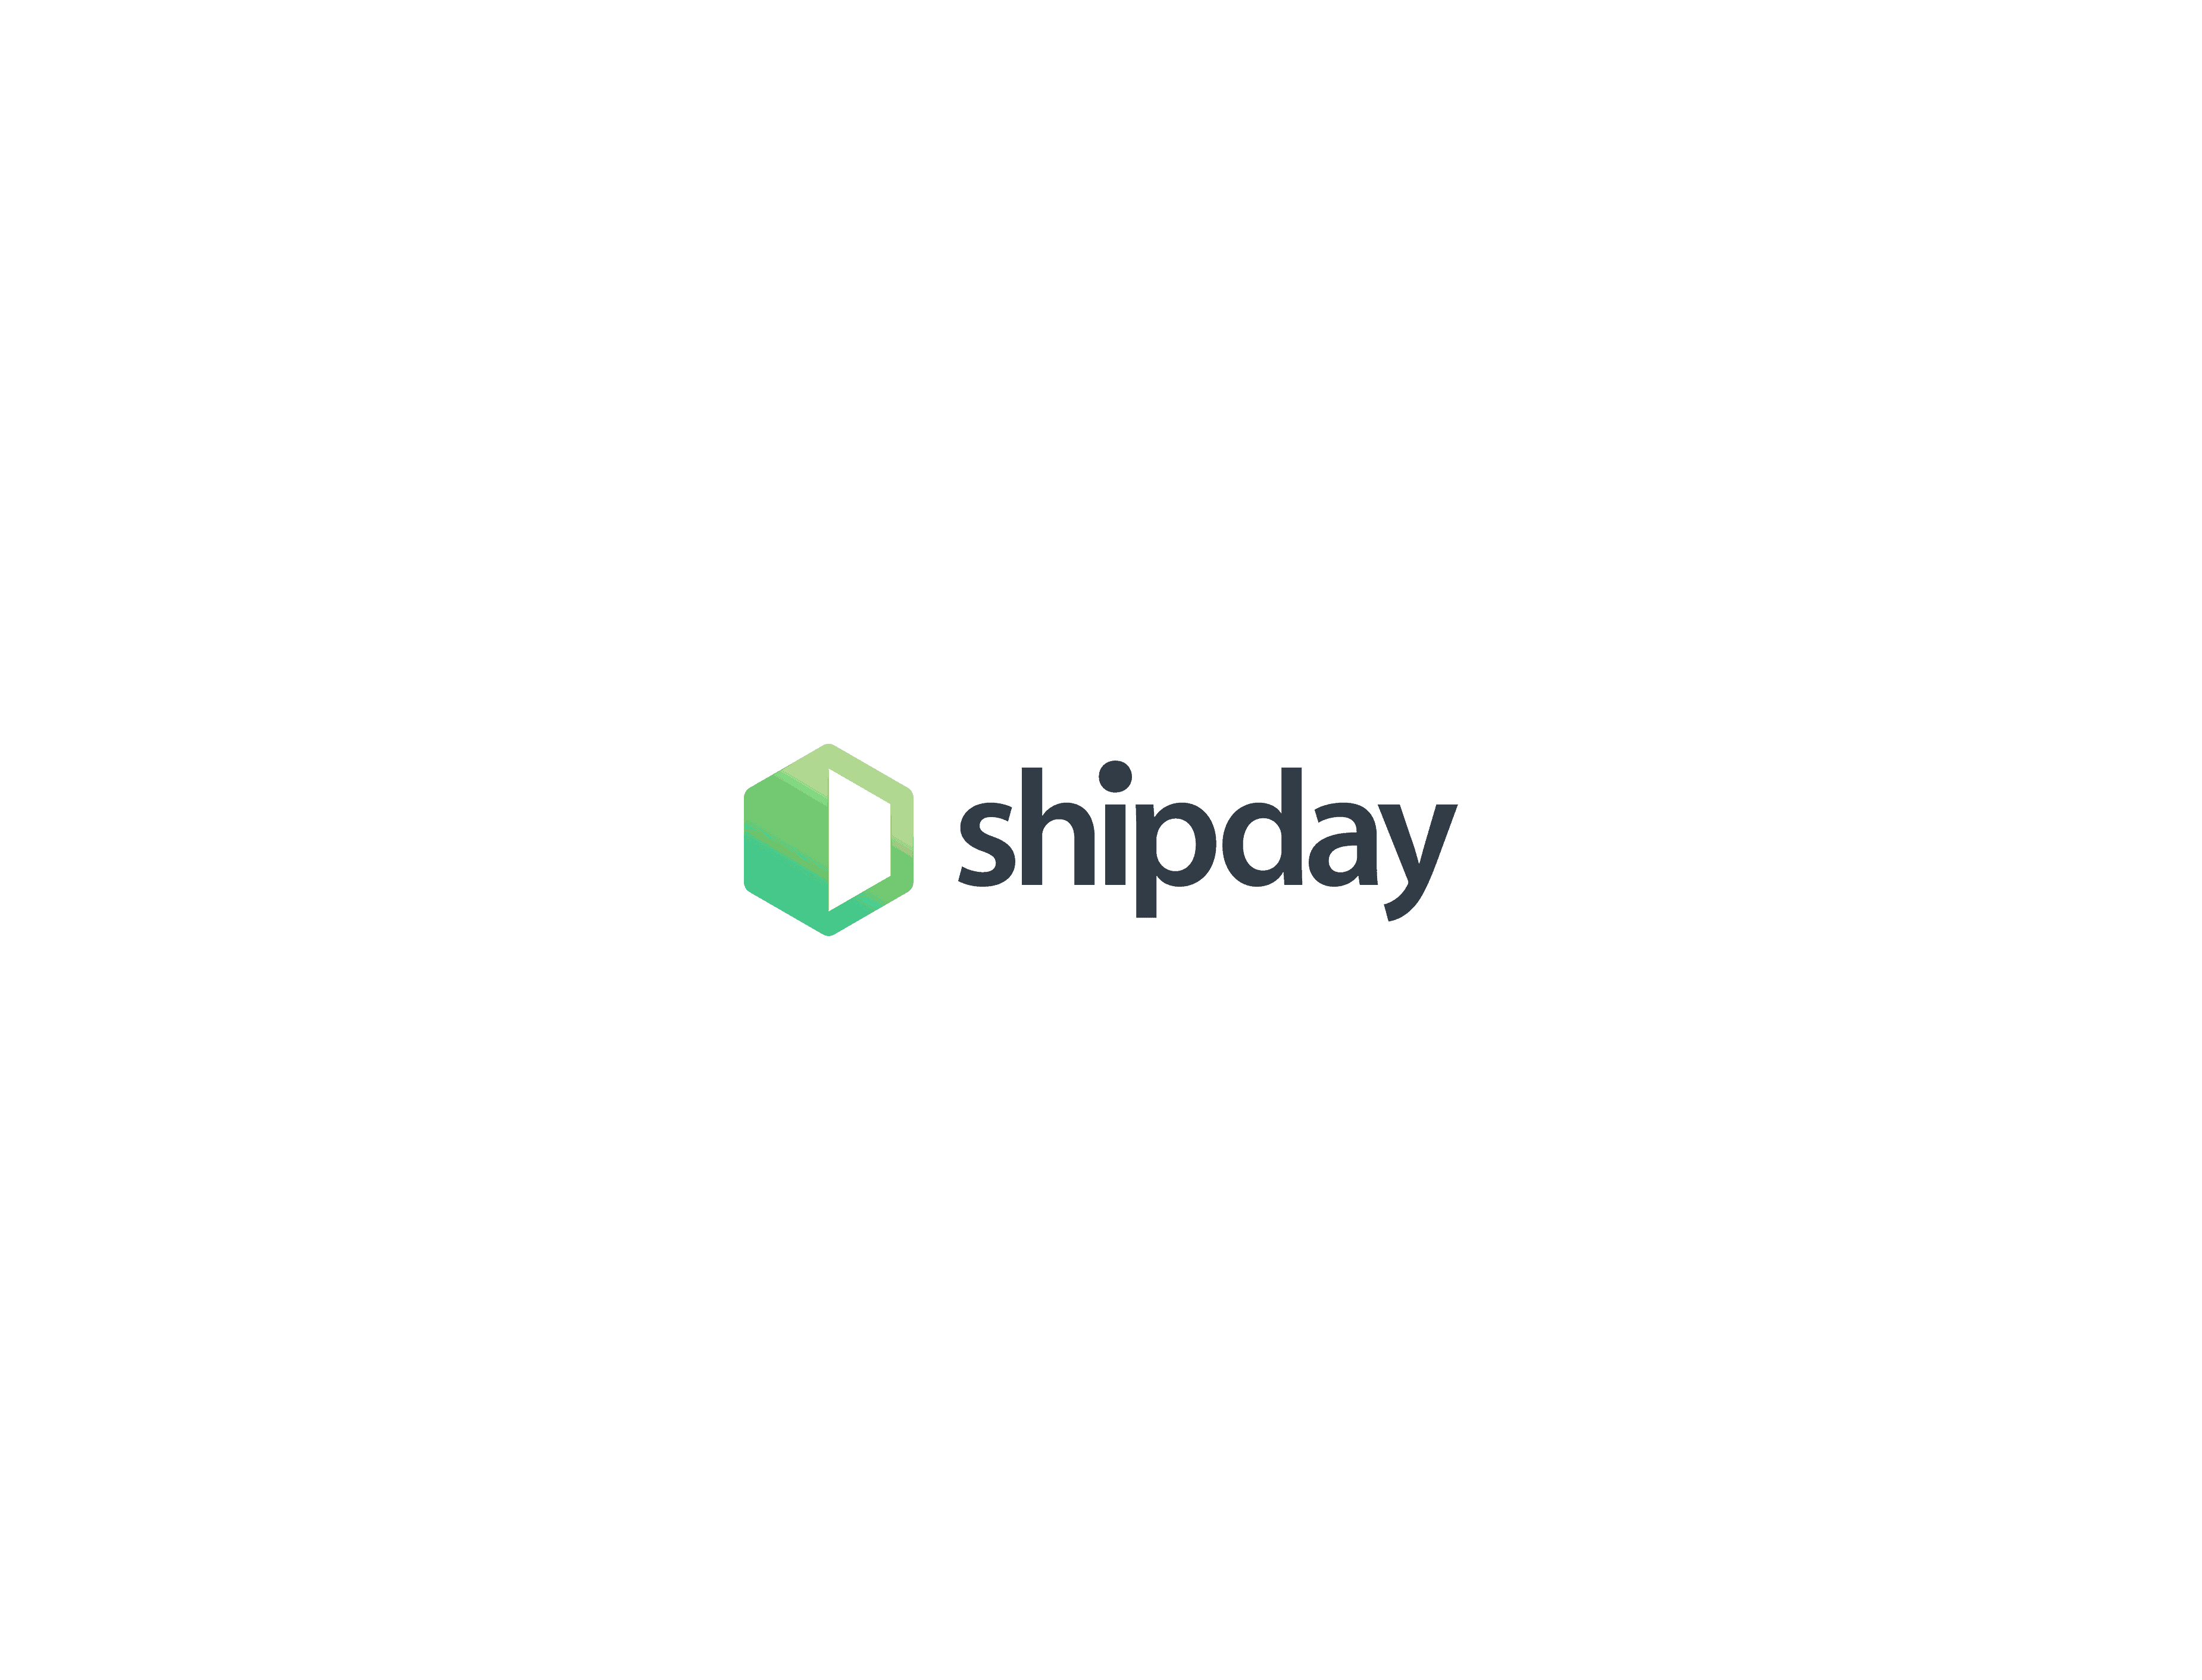 Shipday